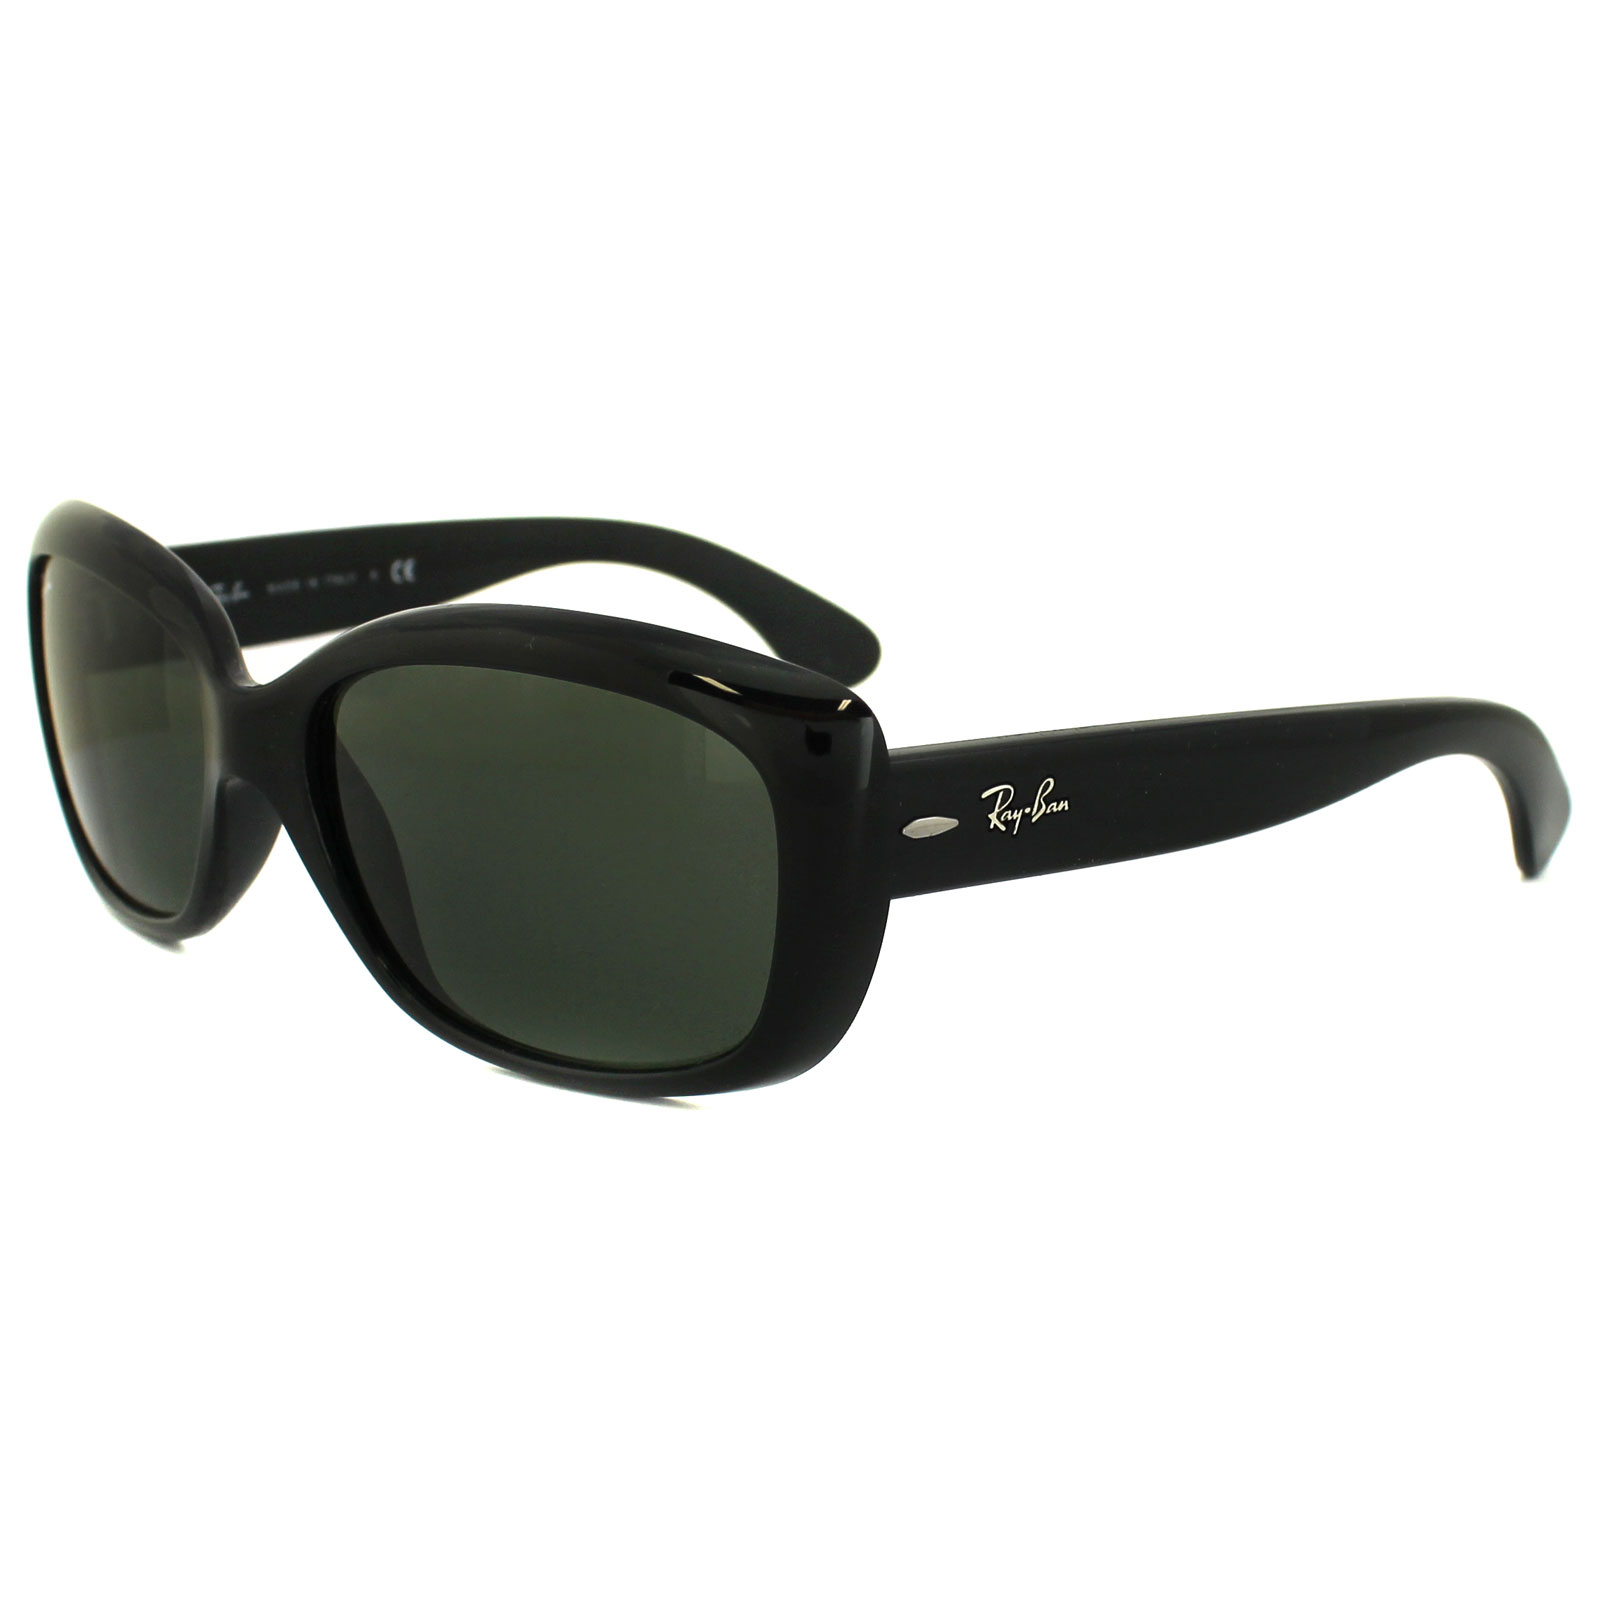 08d4efb7c0 Cheap Ray-Ban Jackie Ohh 4101 Sunglasses - Discounted Sunglasses